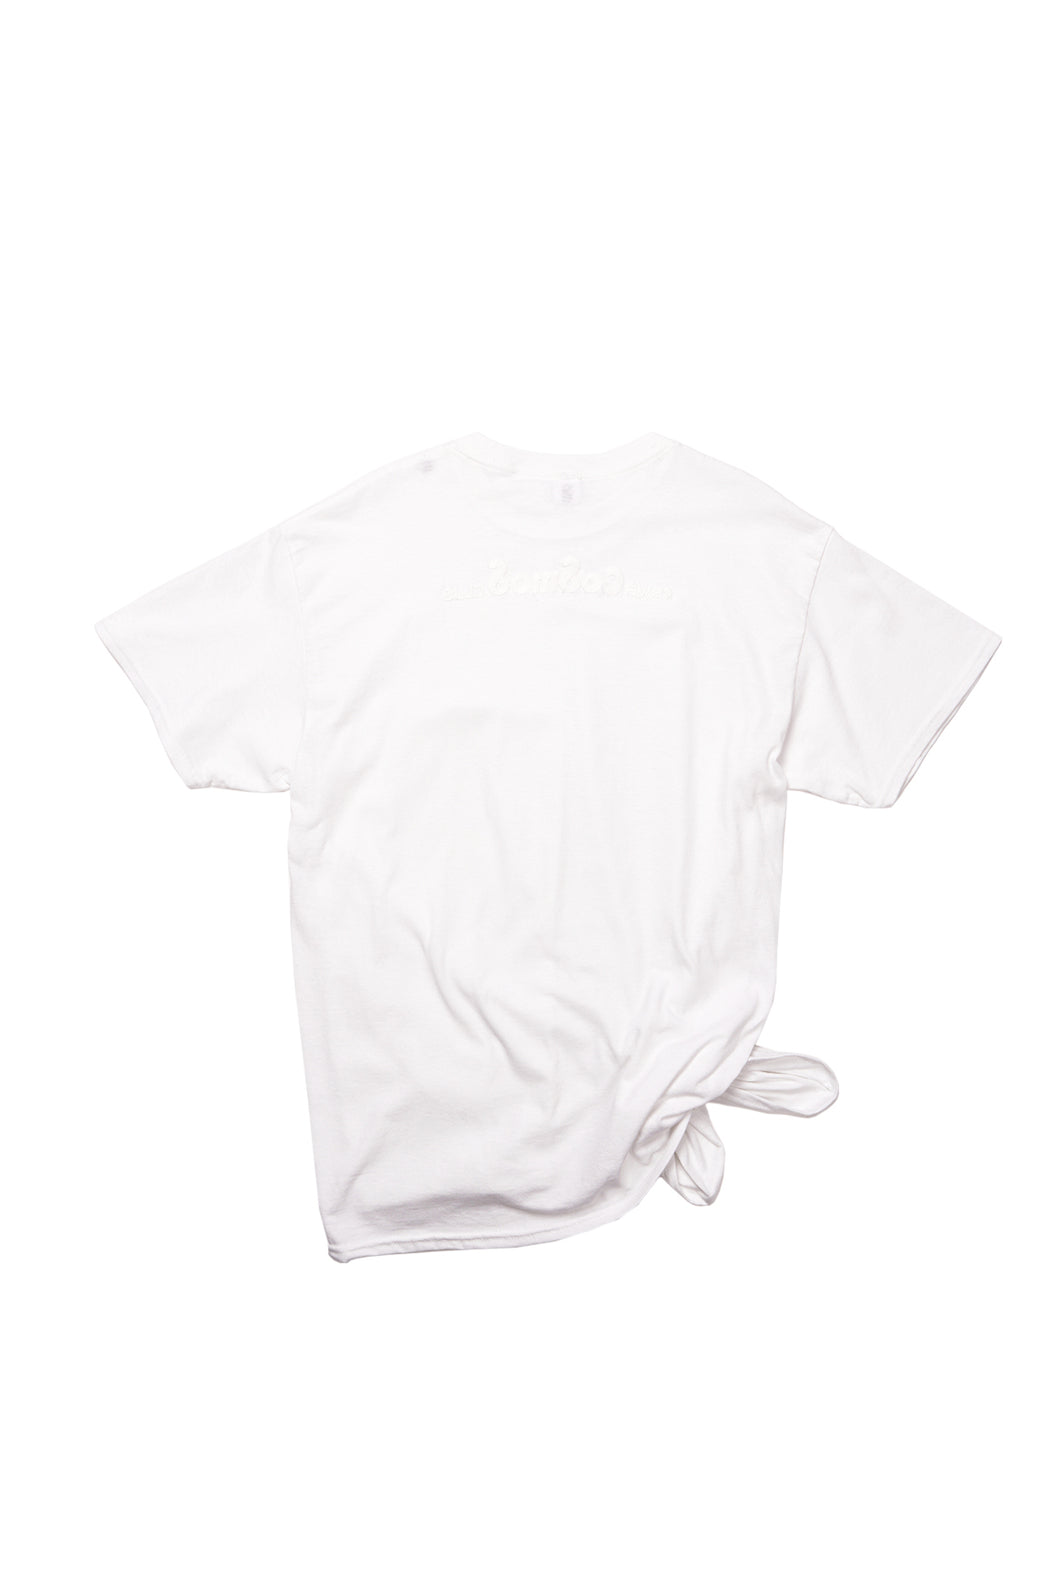 Melted Together Shirts - White